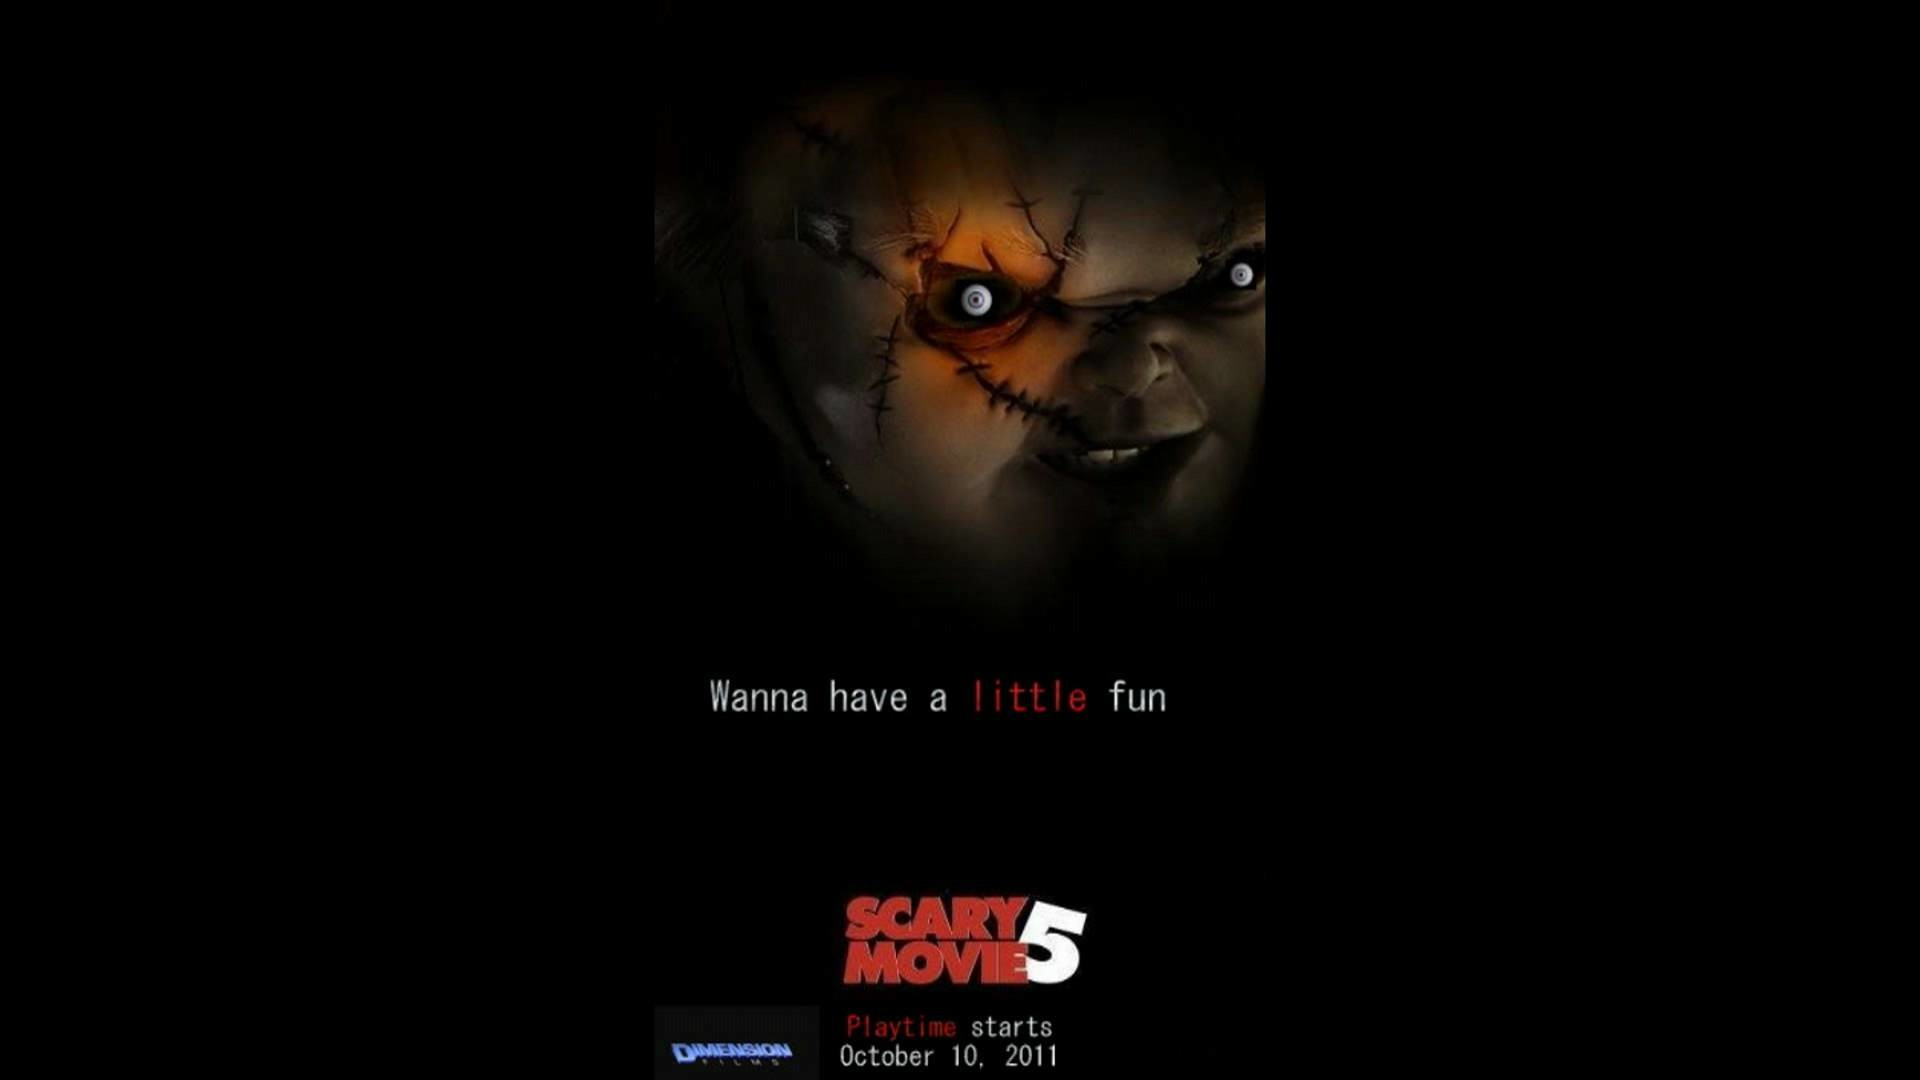 1920x1080 Scary Movie 5 - Seed Of Chucky FAKE spoof poster [05/15/09]